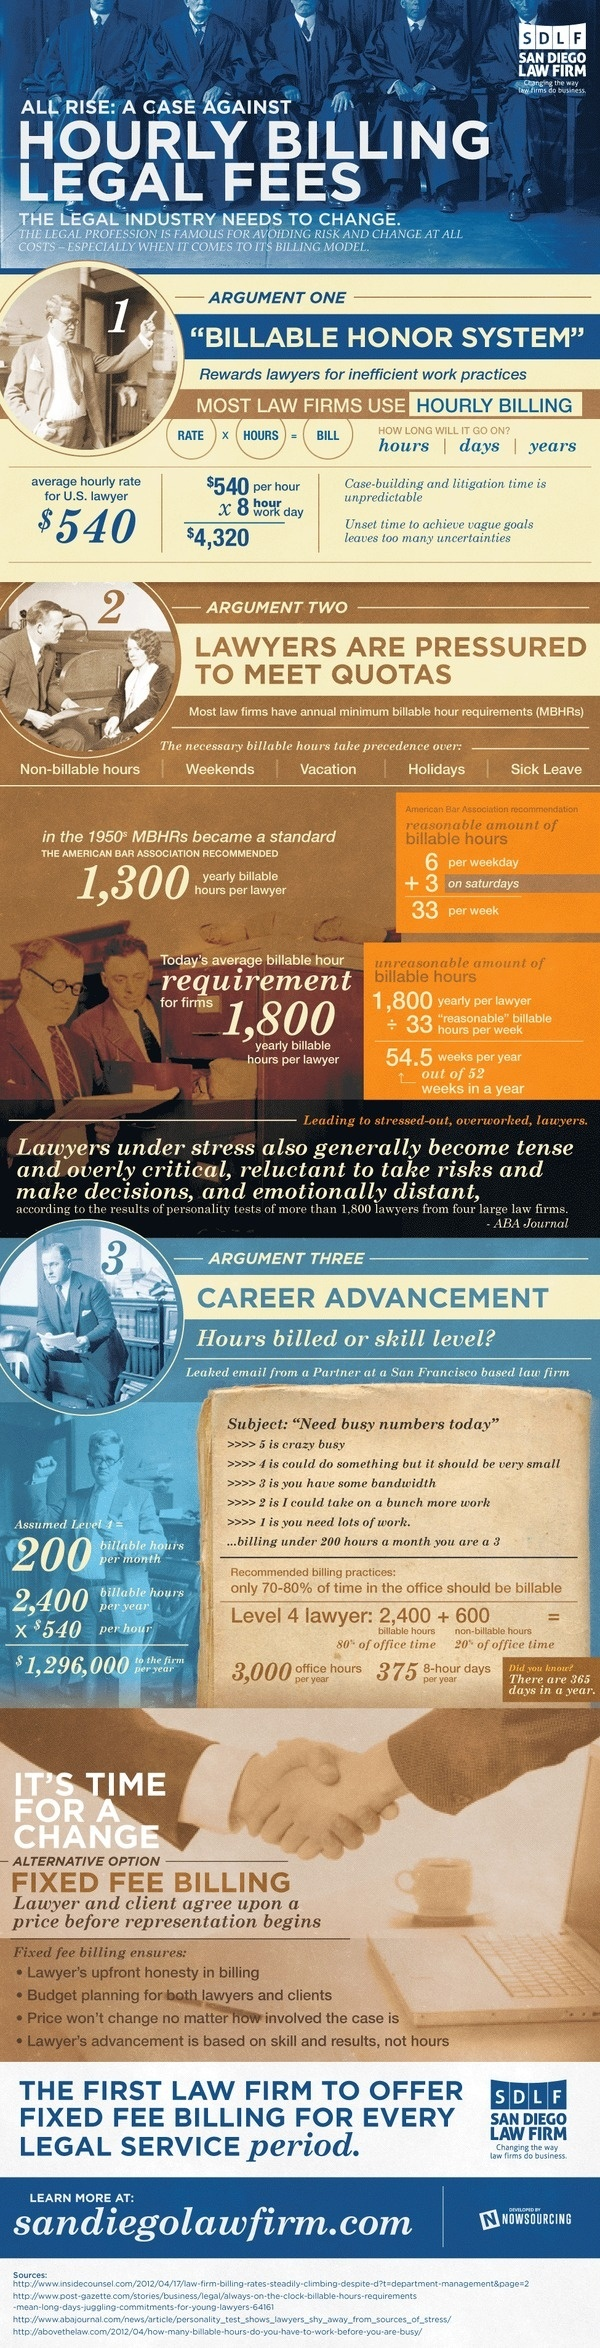 All Rise: A Case Against Hourly Billing Legal Fees #billing #hourly #fee #fixed #infographic #firm #legal #fees #law #lawyer